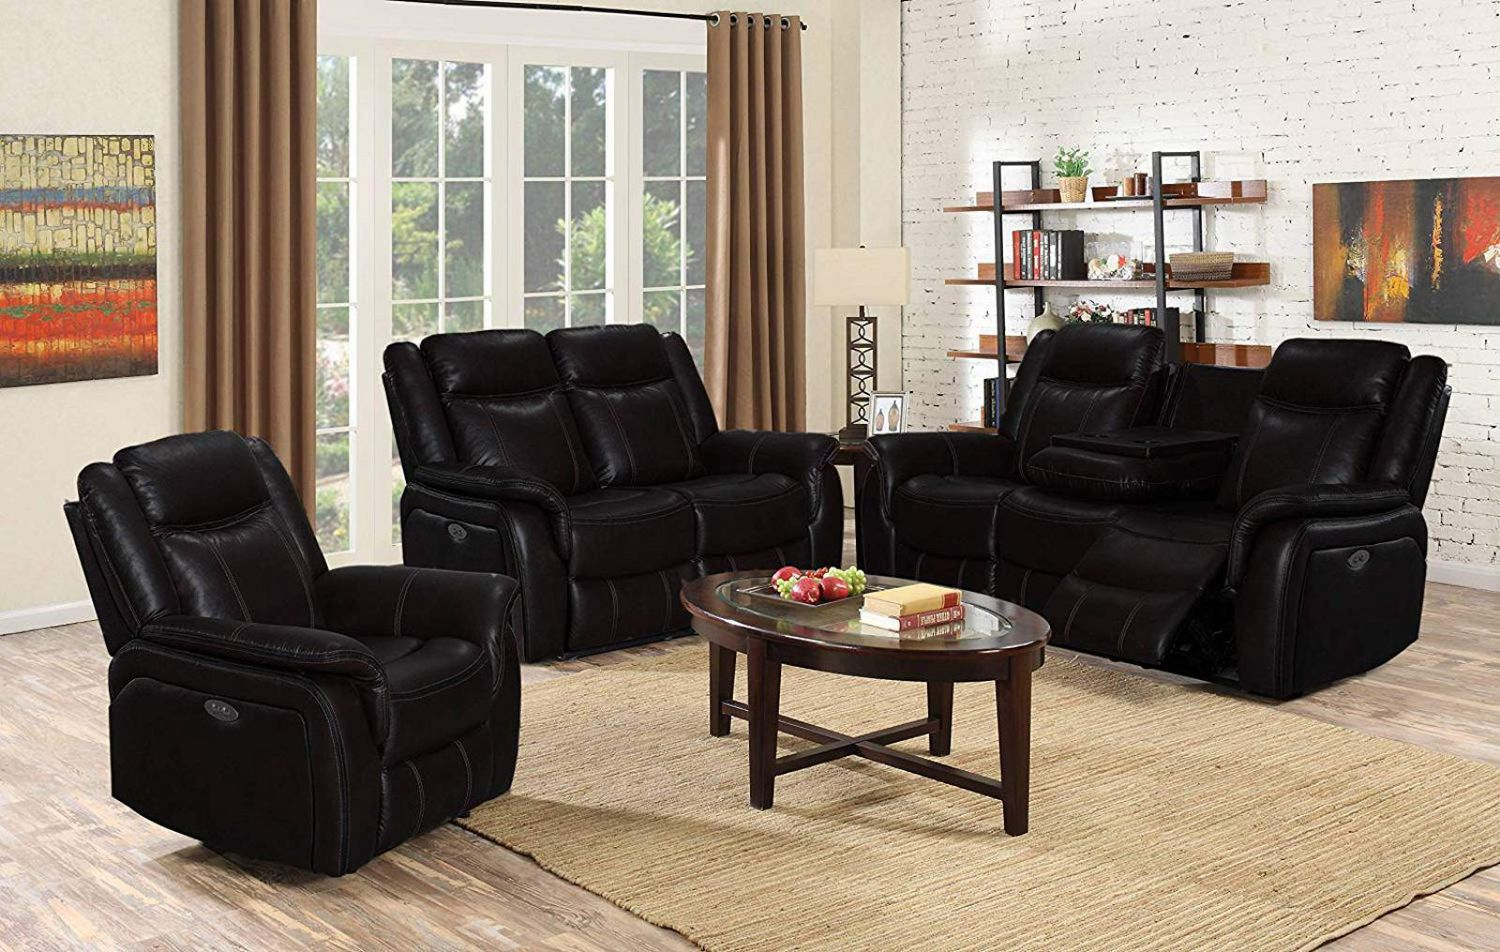 K Living Oscar Leathaire Power Recliner Set In Black Walmart Canada